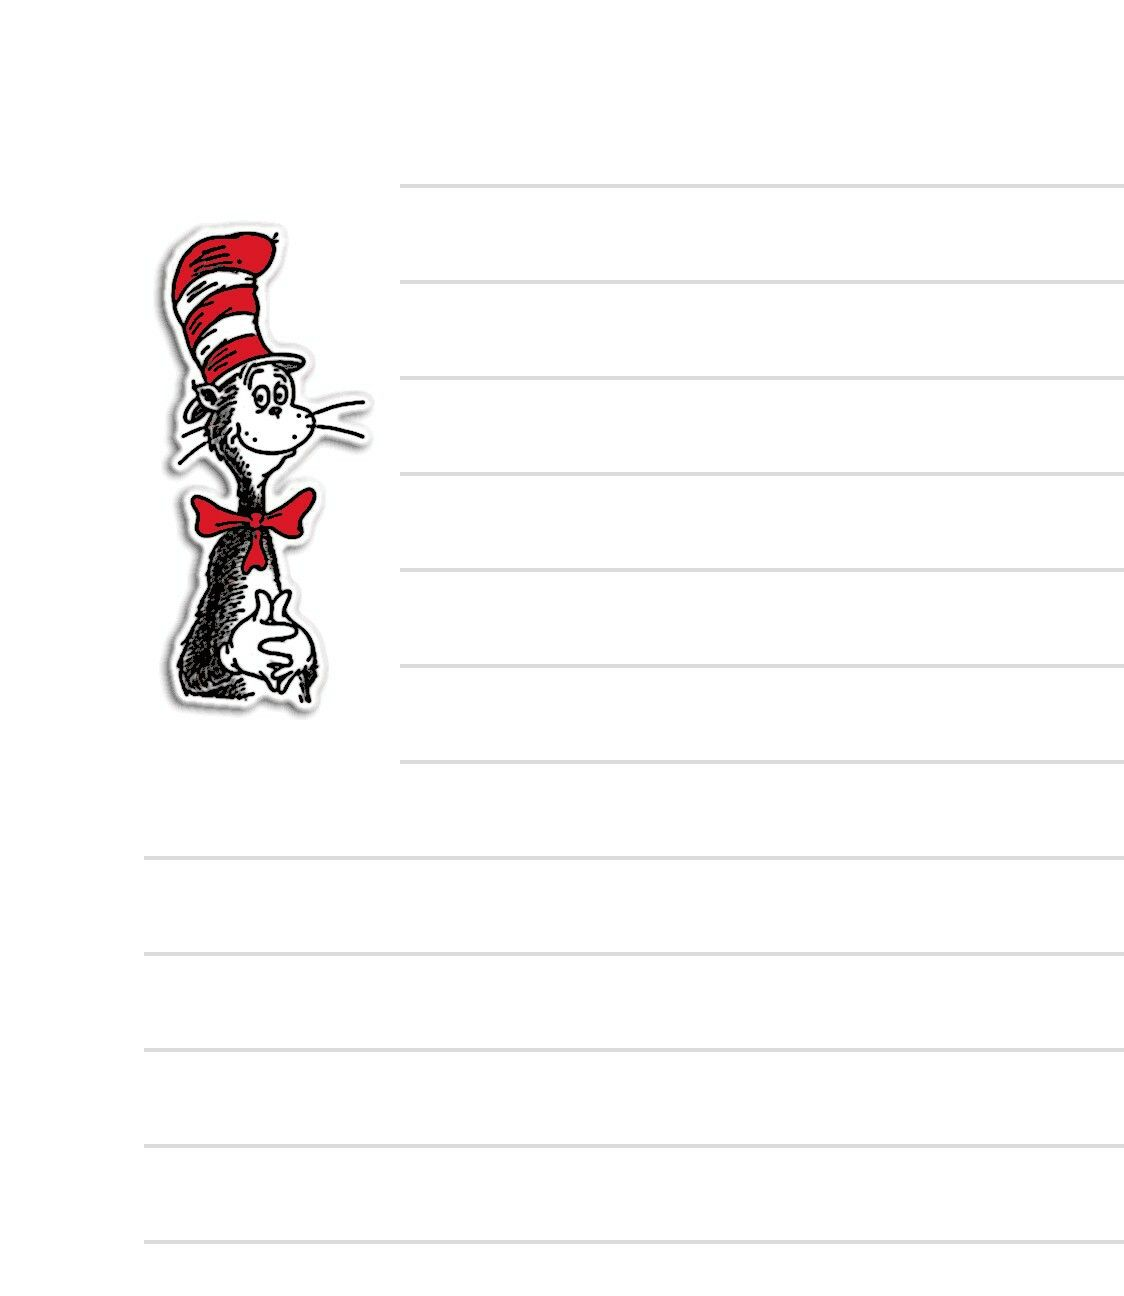 Pin de Franki Carrico en Dr Seuss Stationary | Pinterest